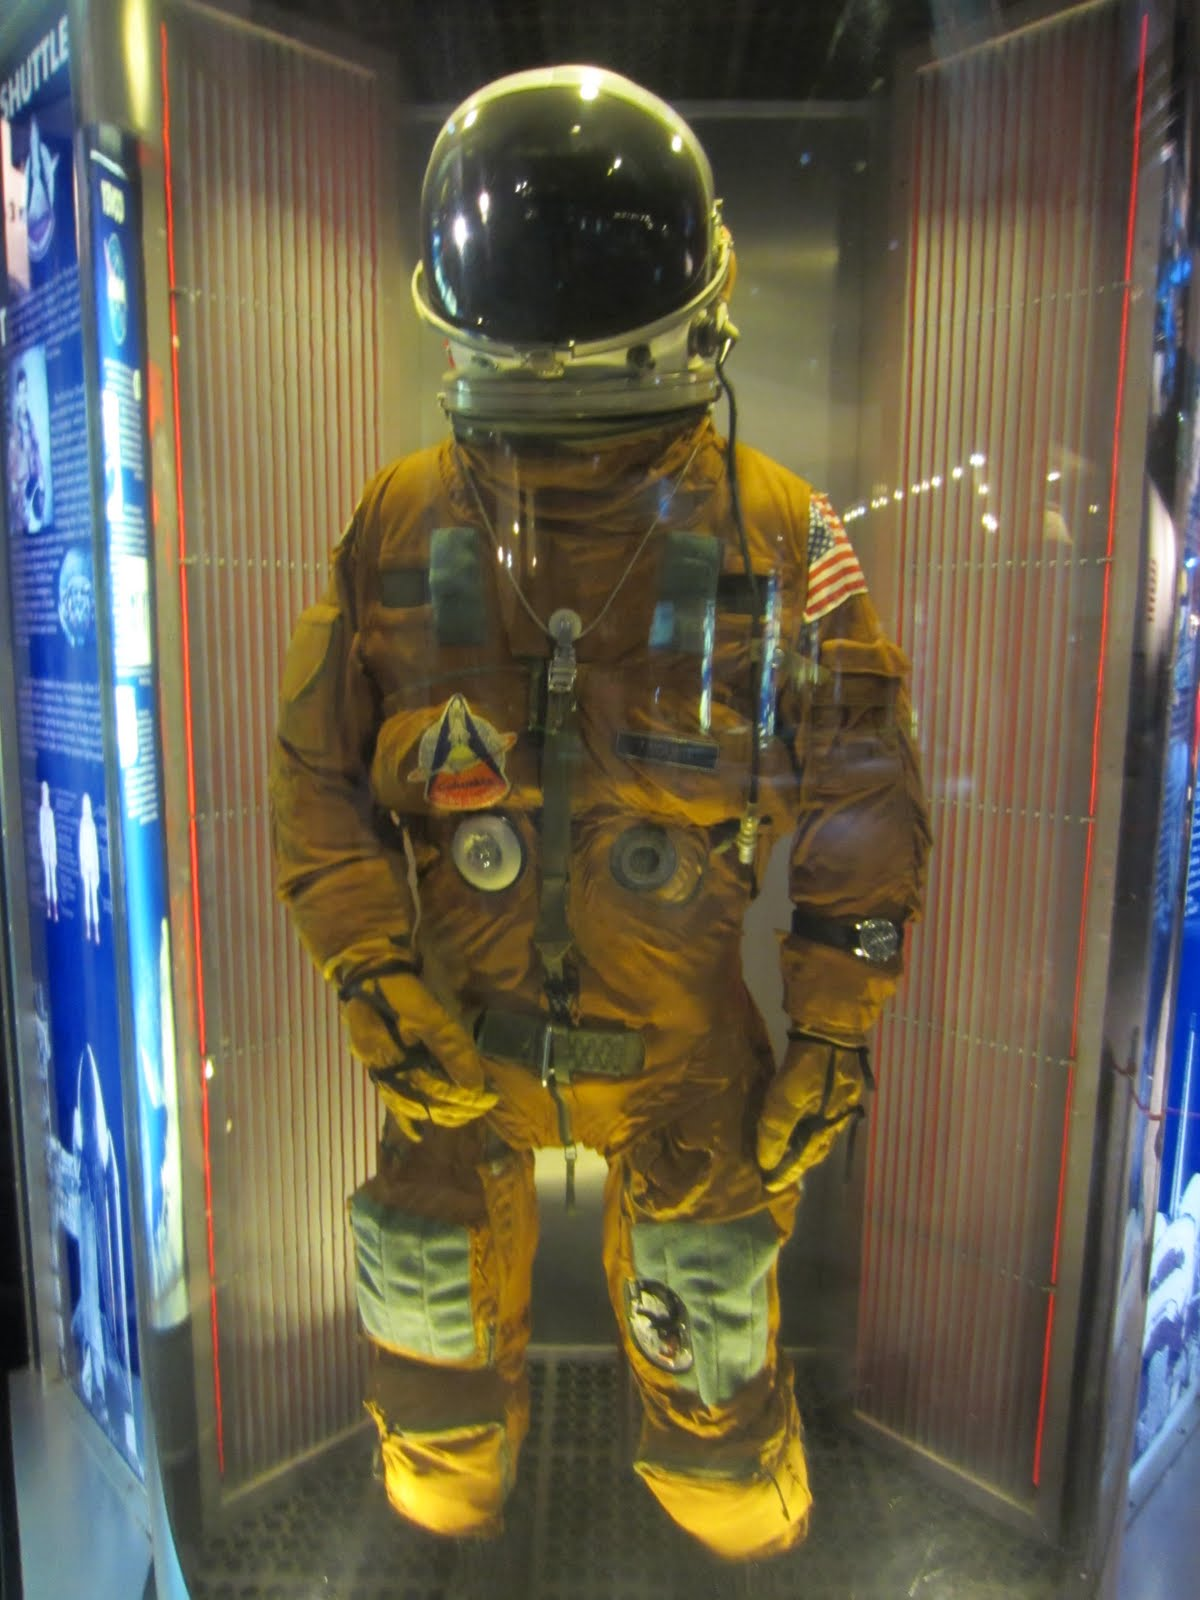 Space Shuttle Space Suit - Pics about space